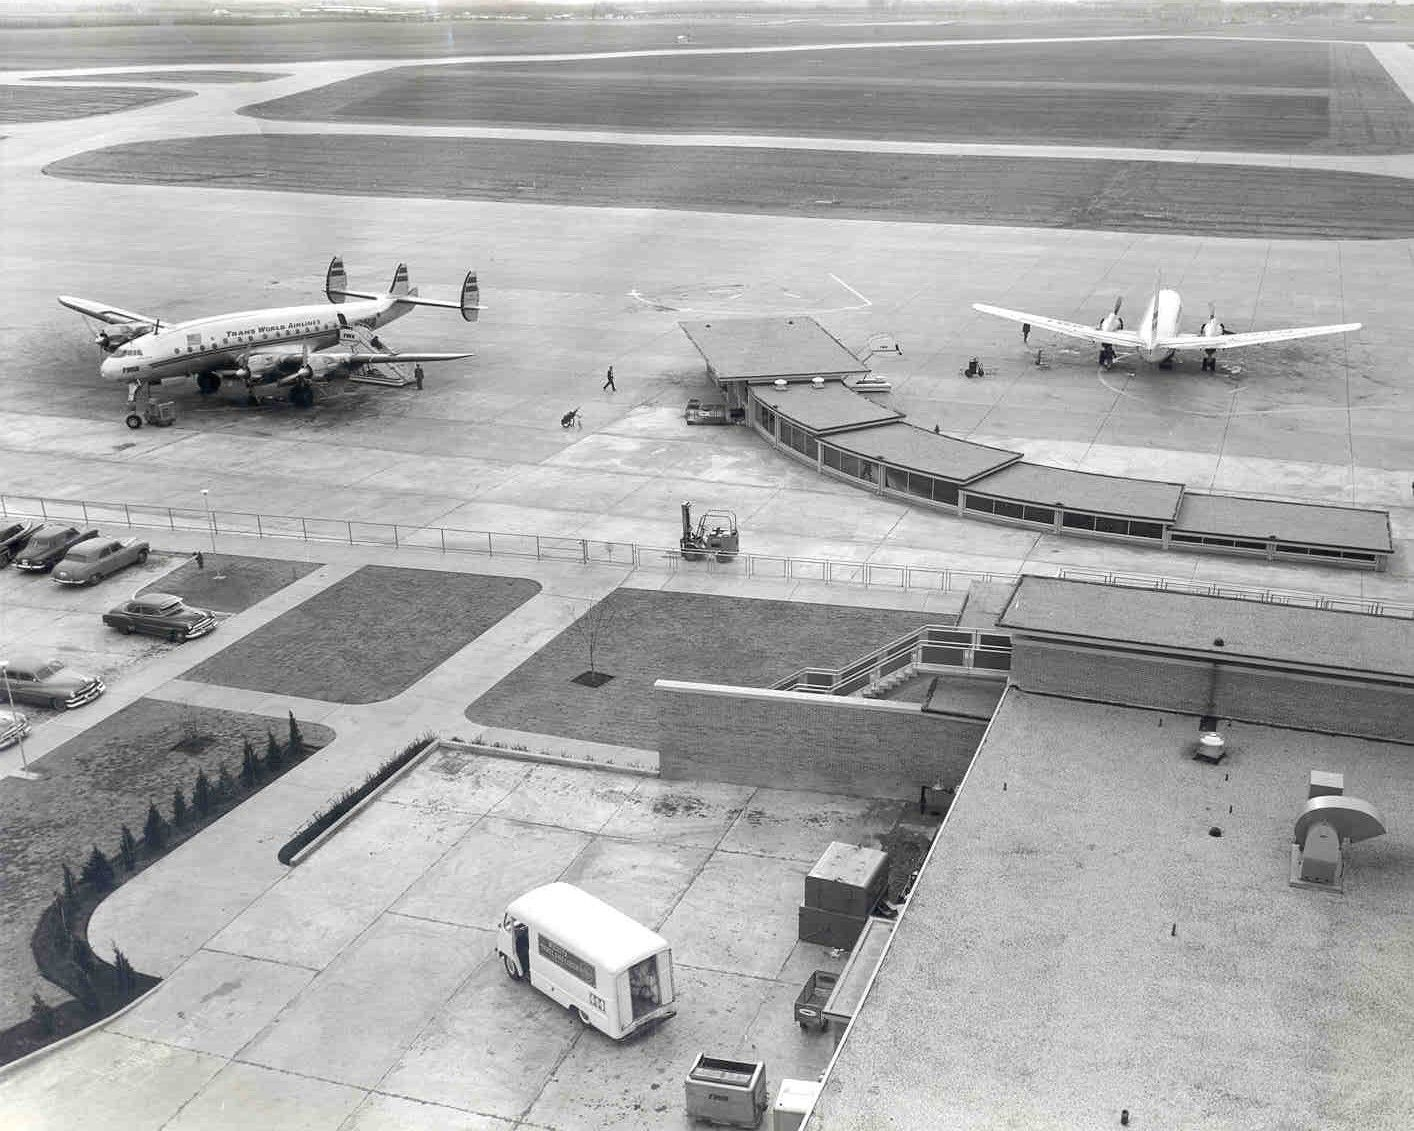 White apron gainesville fl - Wichita Mid Continent Airport Terminal Building Ramp Area 1954 Airtravel Ict Travel